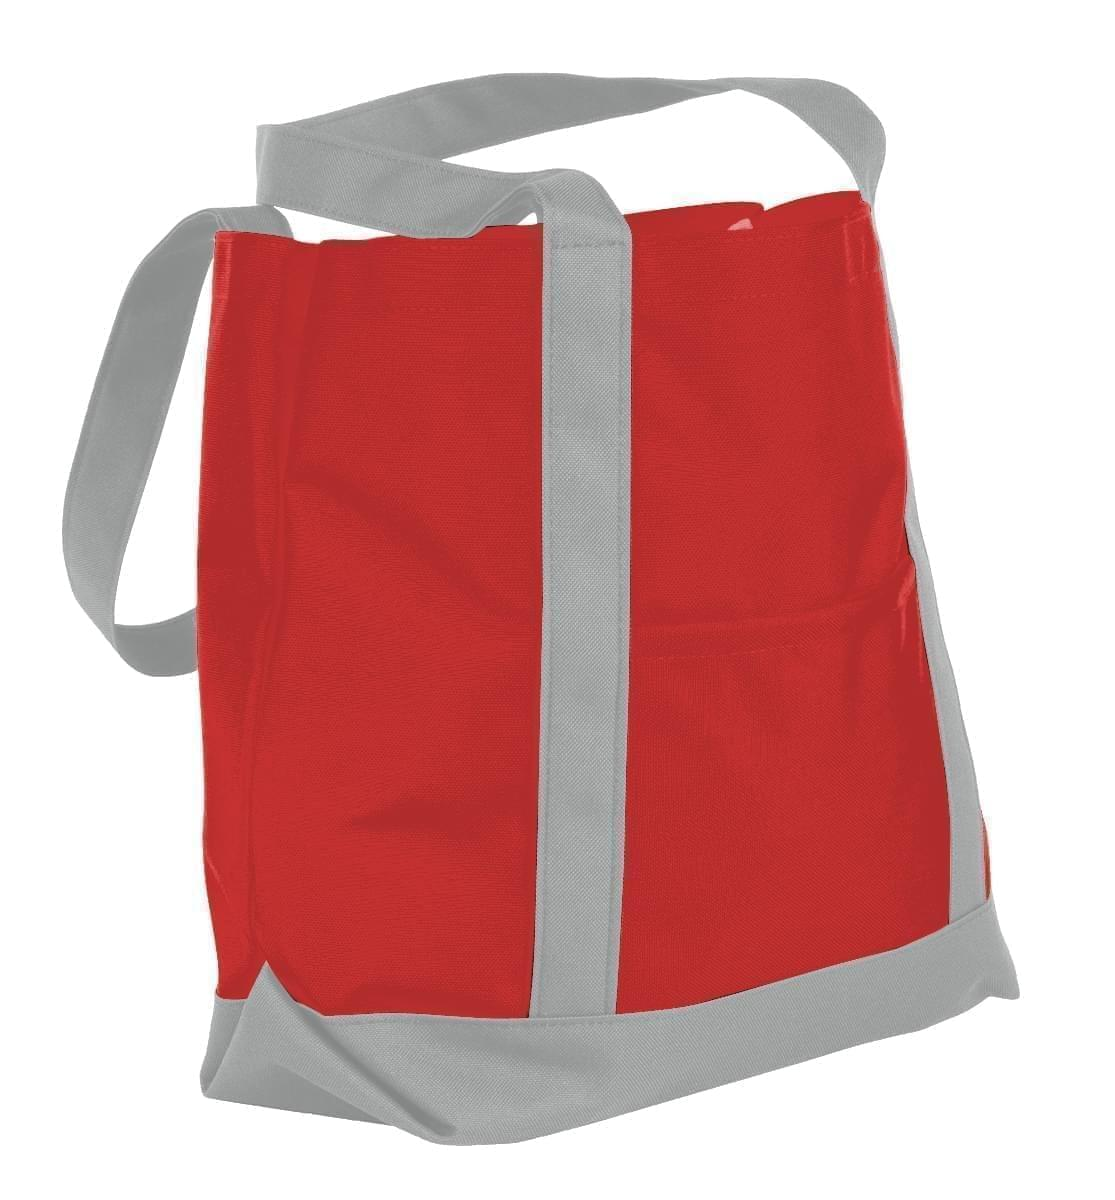 USA Made Nylon Poly Boat Tote Bags, Red-Grey, XAACL1UAZN